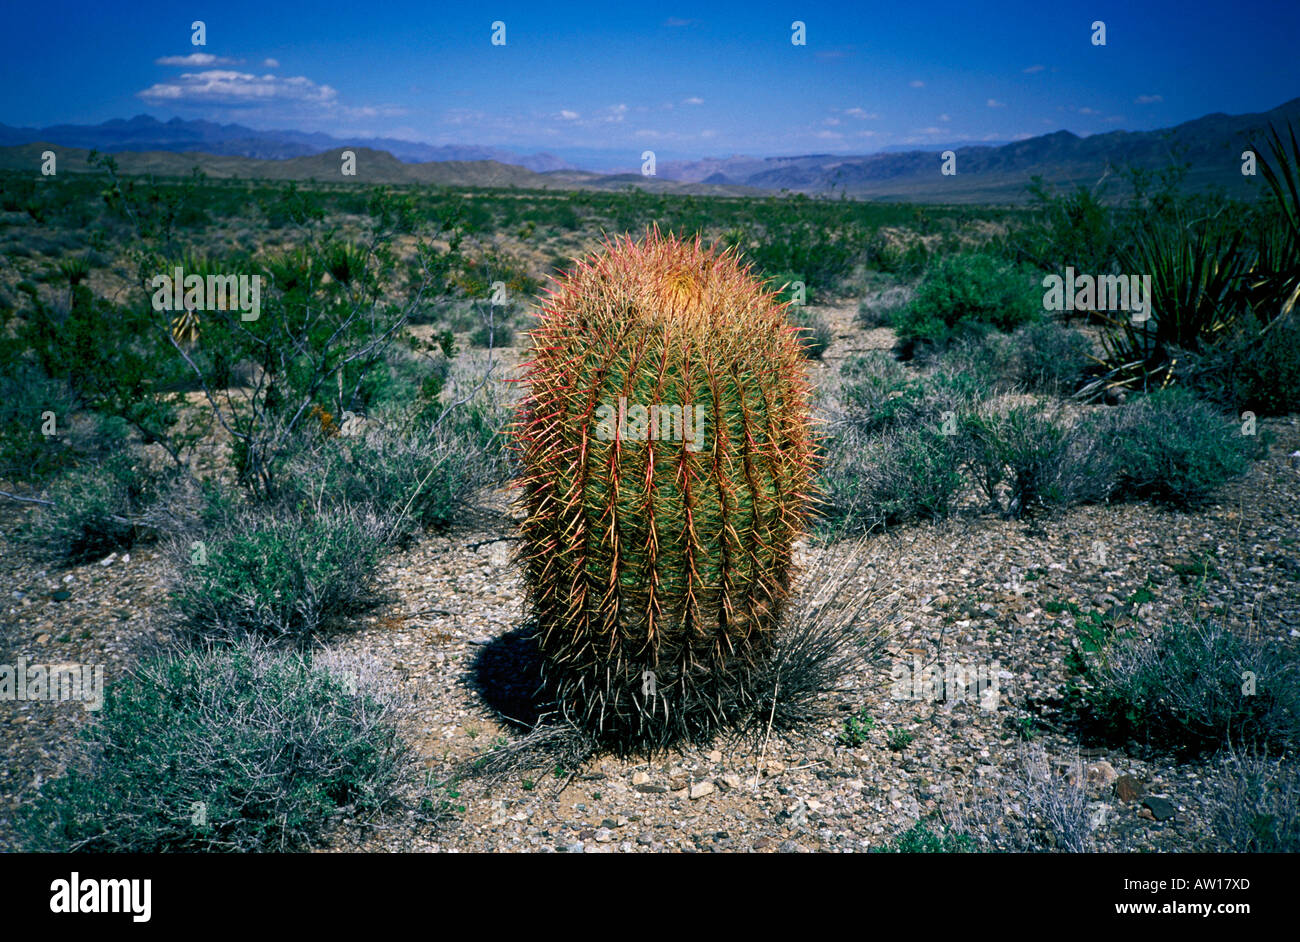 A Barrel Cactus stands out against desert brush in the Sonoran Desert. - Stock Image